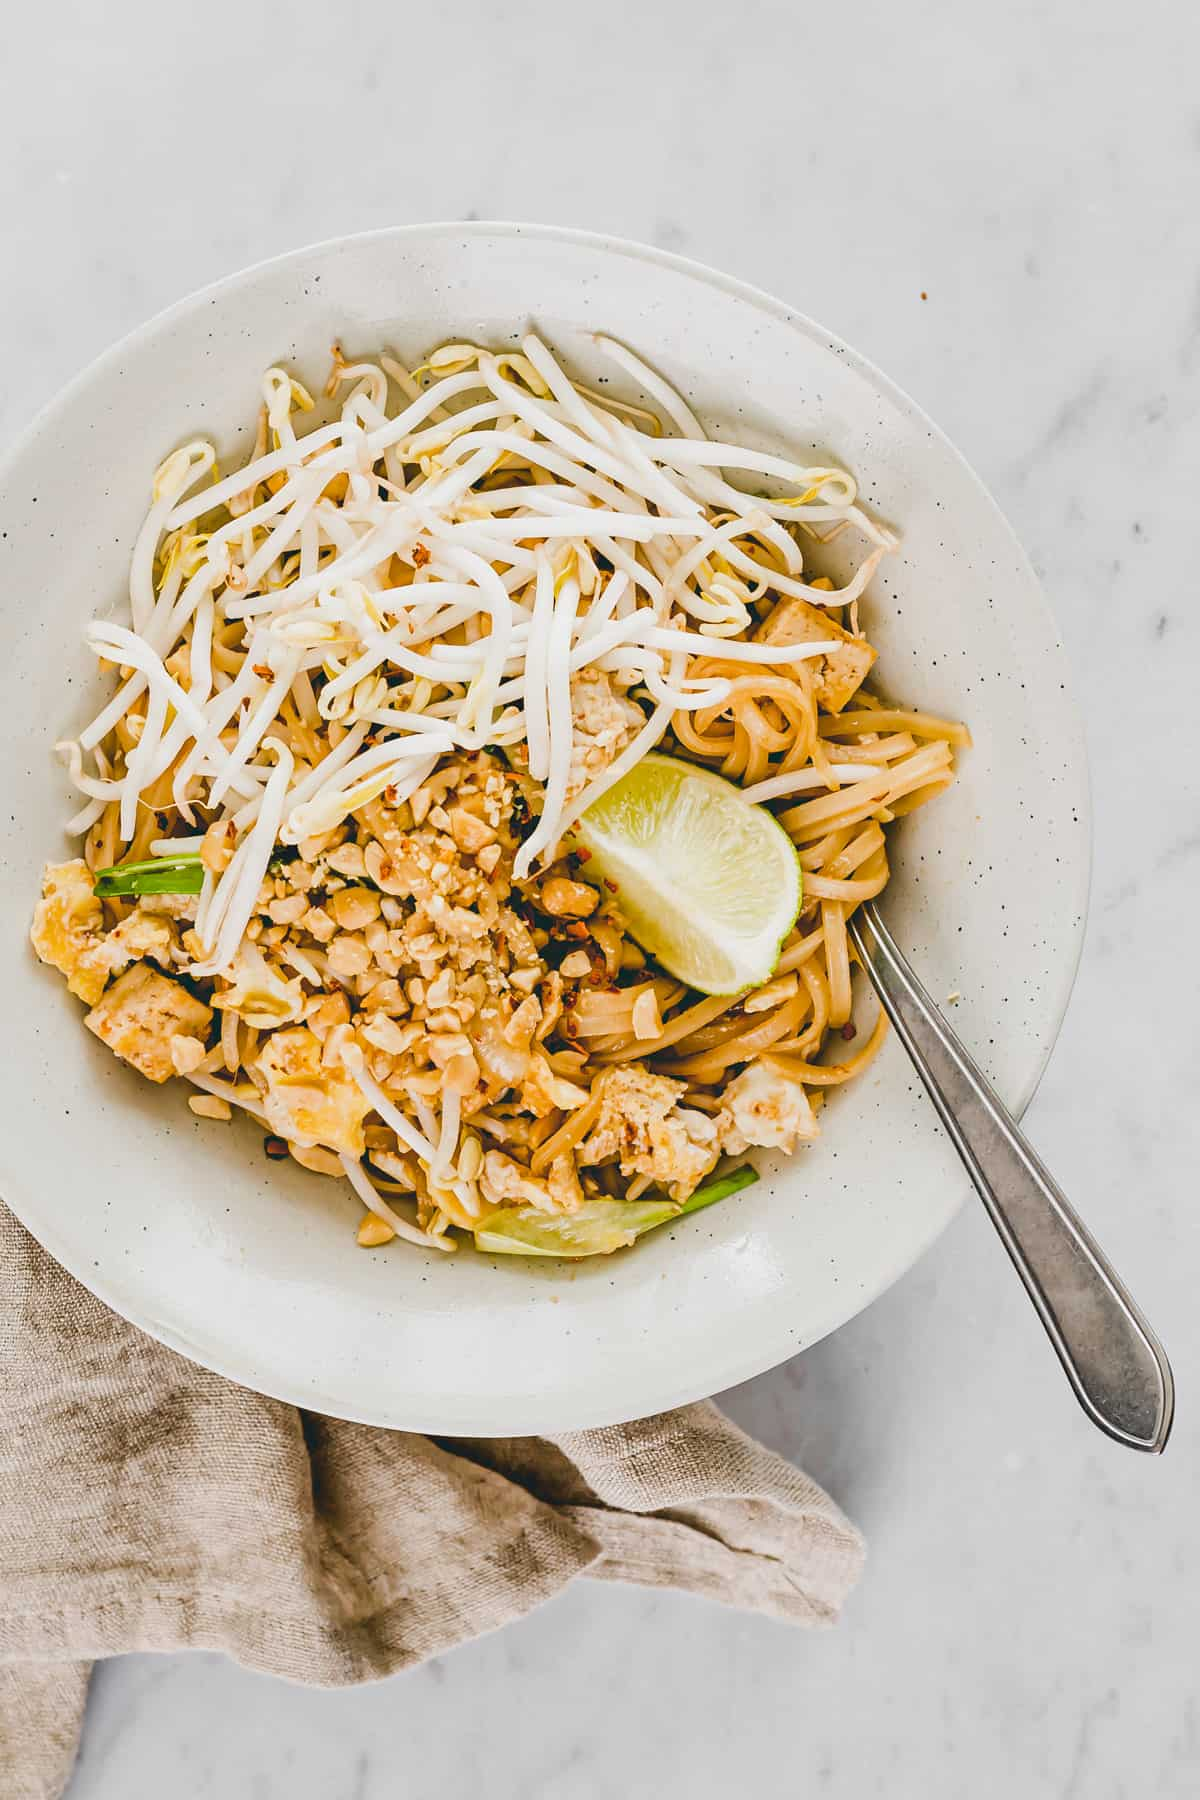 vegetarian pad thai noodles in a bowl topped with bean sprouts, lime, and peanuts